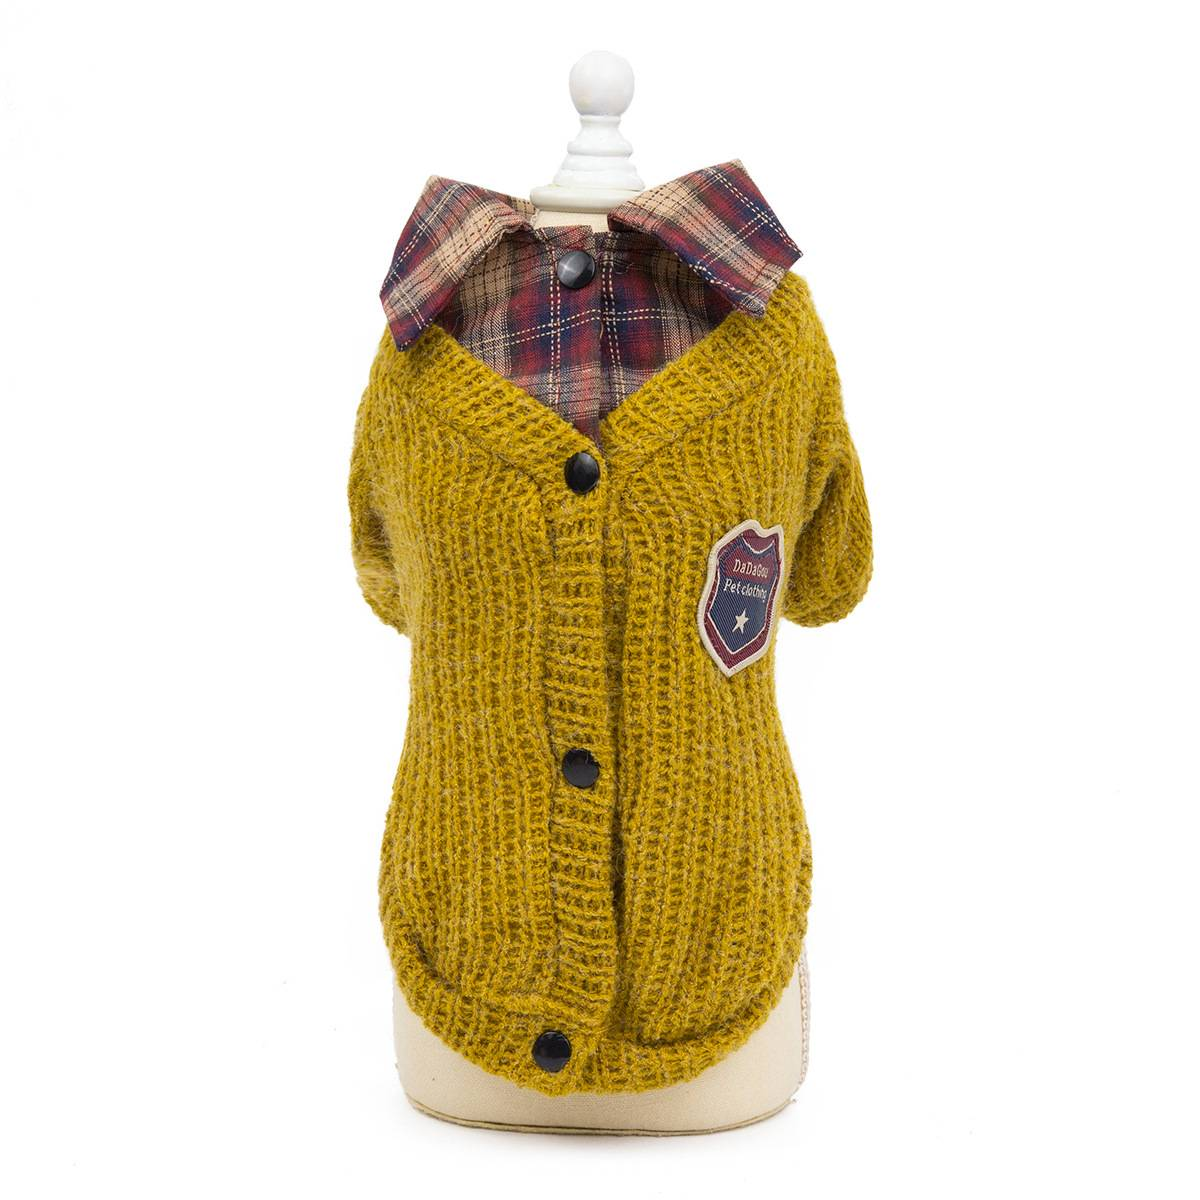 Small Dog Knitted Jumper Knitwear Pet Clothes Chihuahua ...